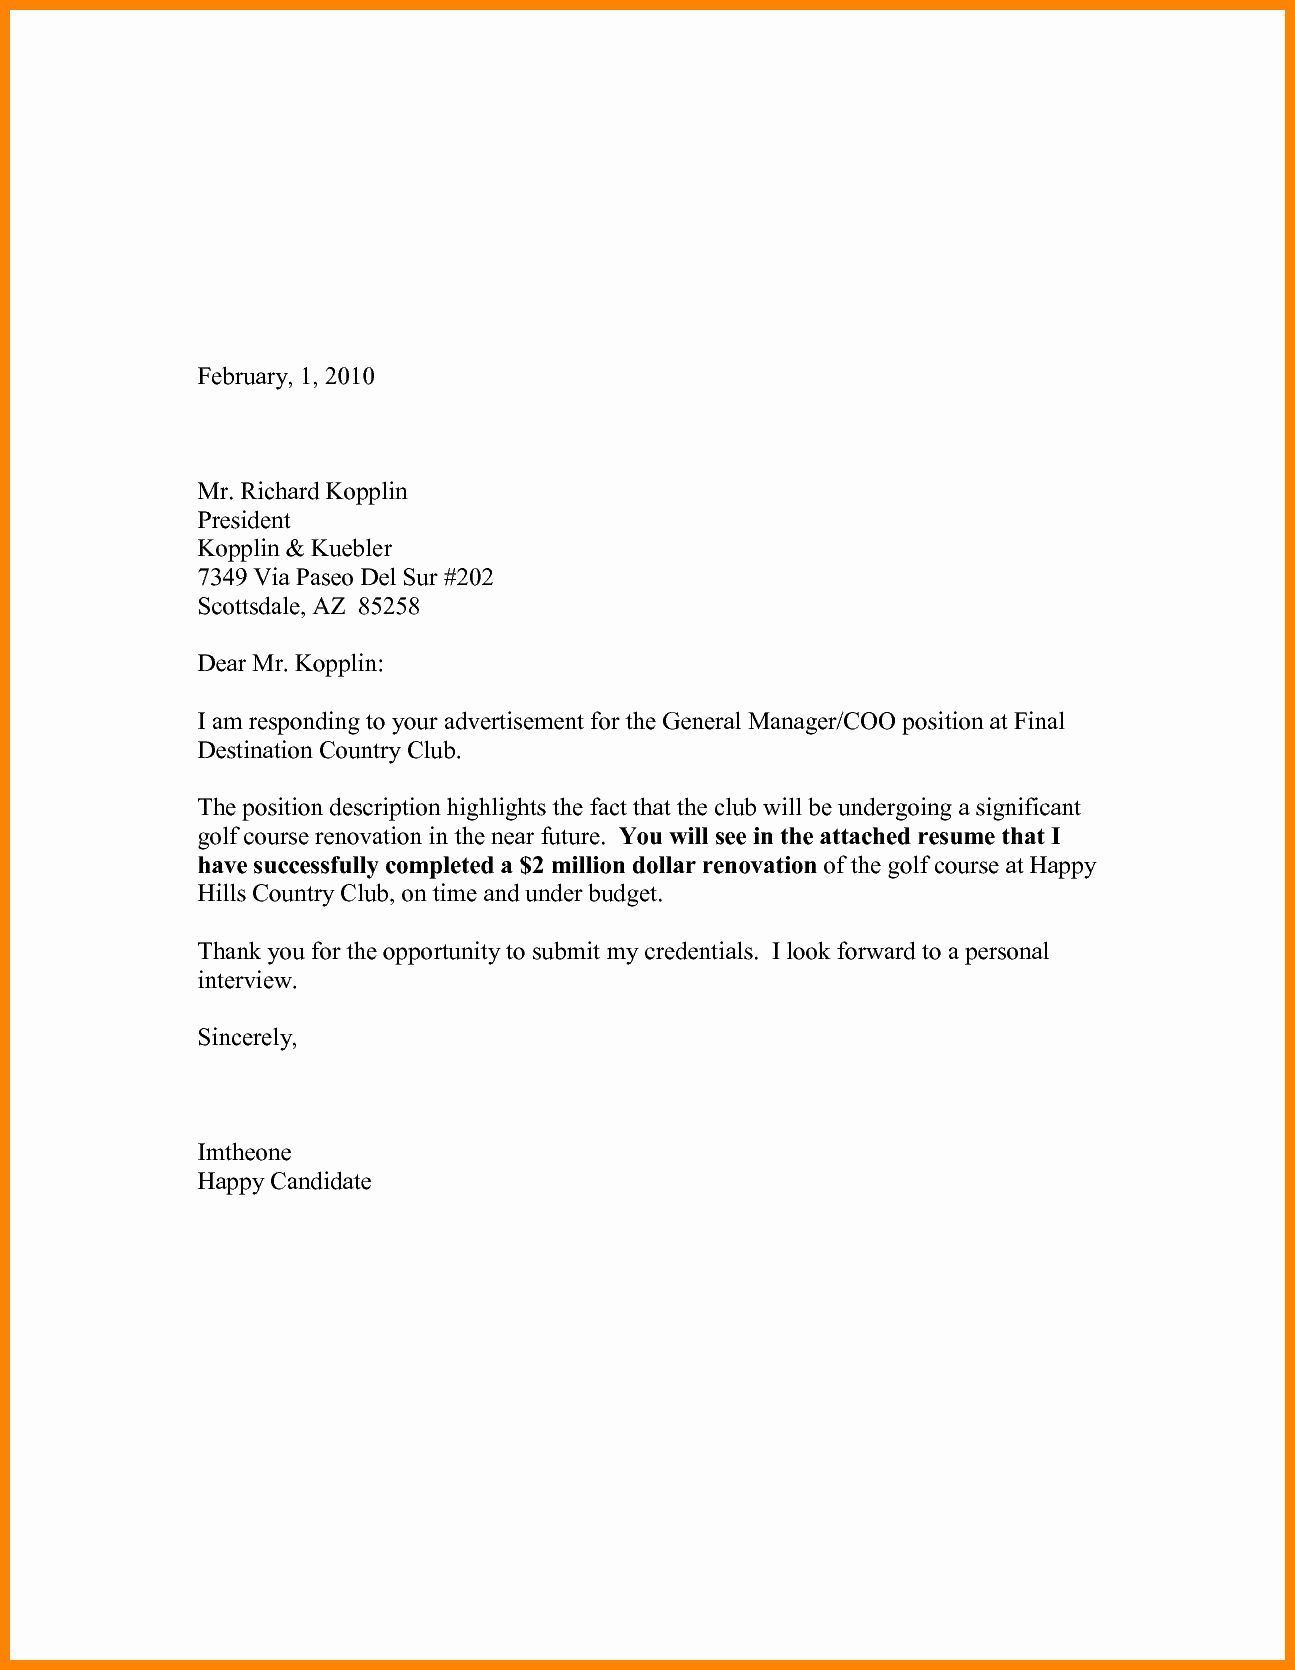 Cover Letter For Resume Template Beautiful 12 Cv Letter Sample Pdf Email Cover Letter Cover Letter For Resume Job Cover Letter What is a cv letter